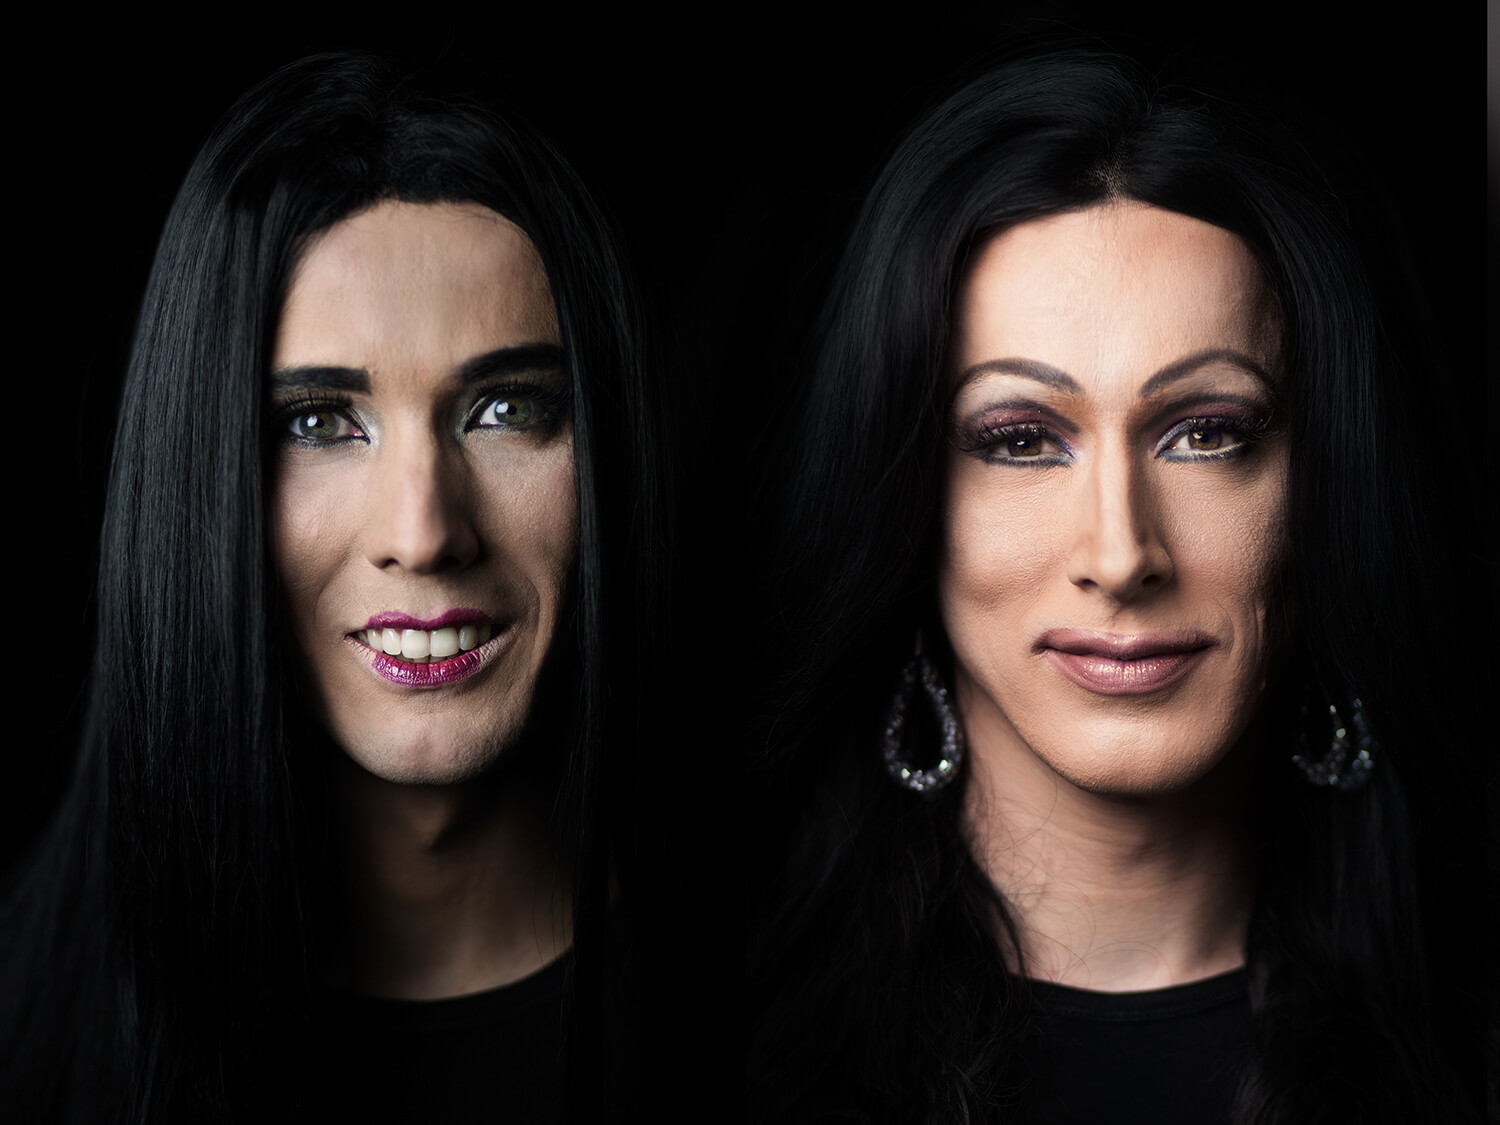 portrait photography with Drag performers in Berlin by photographer Caroline Wimmer